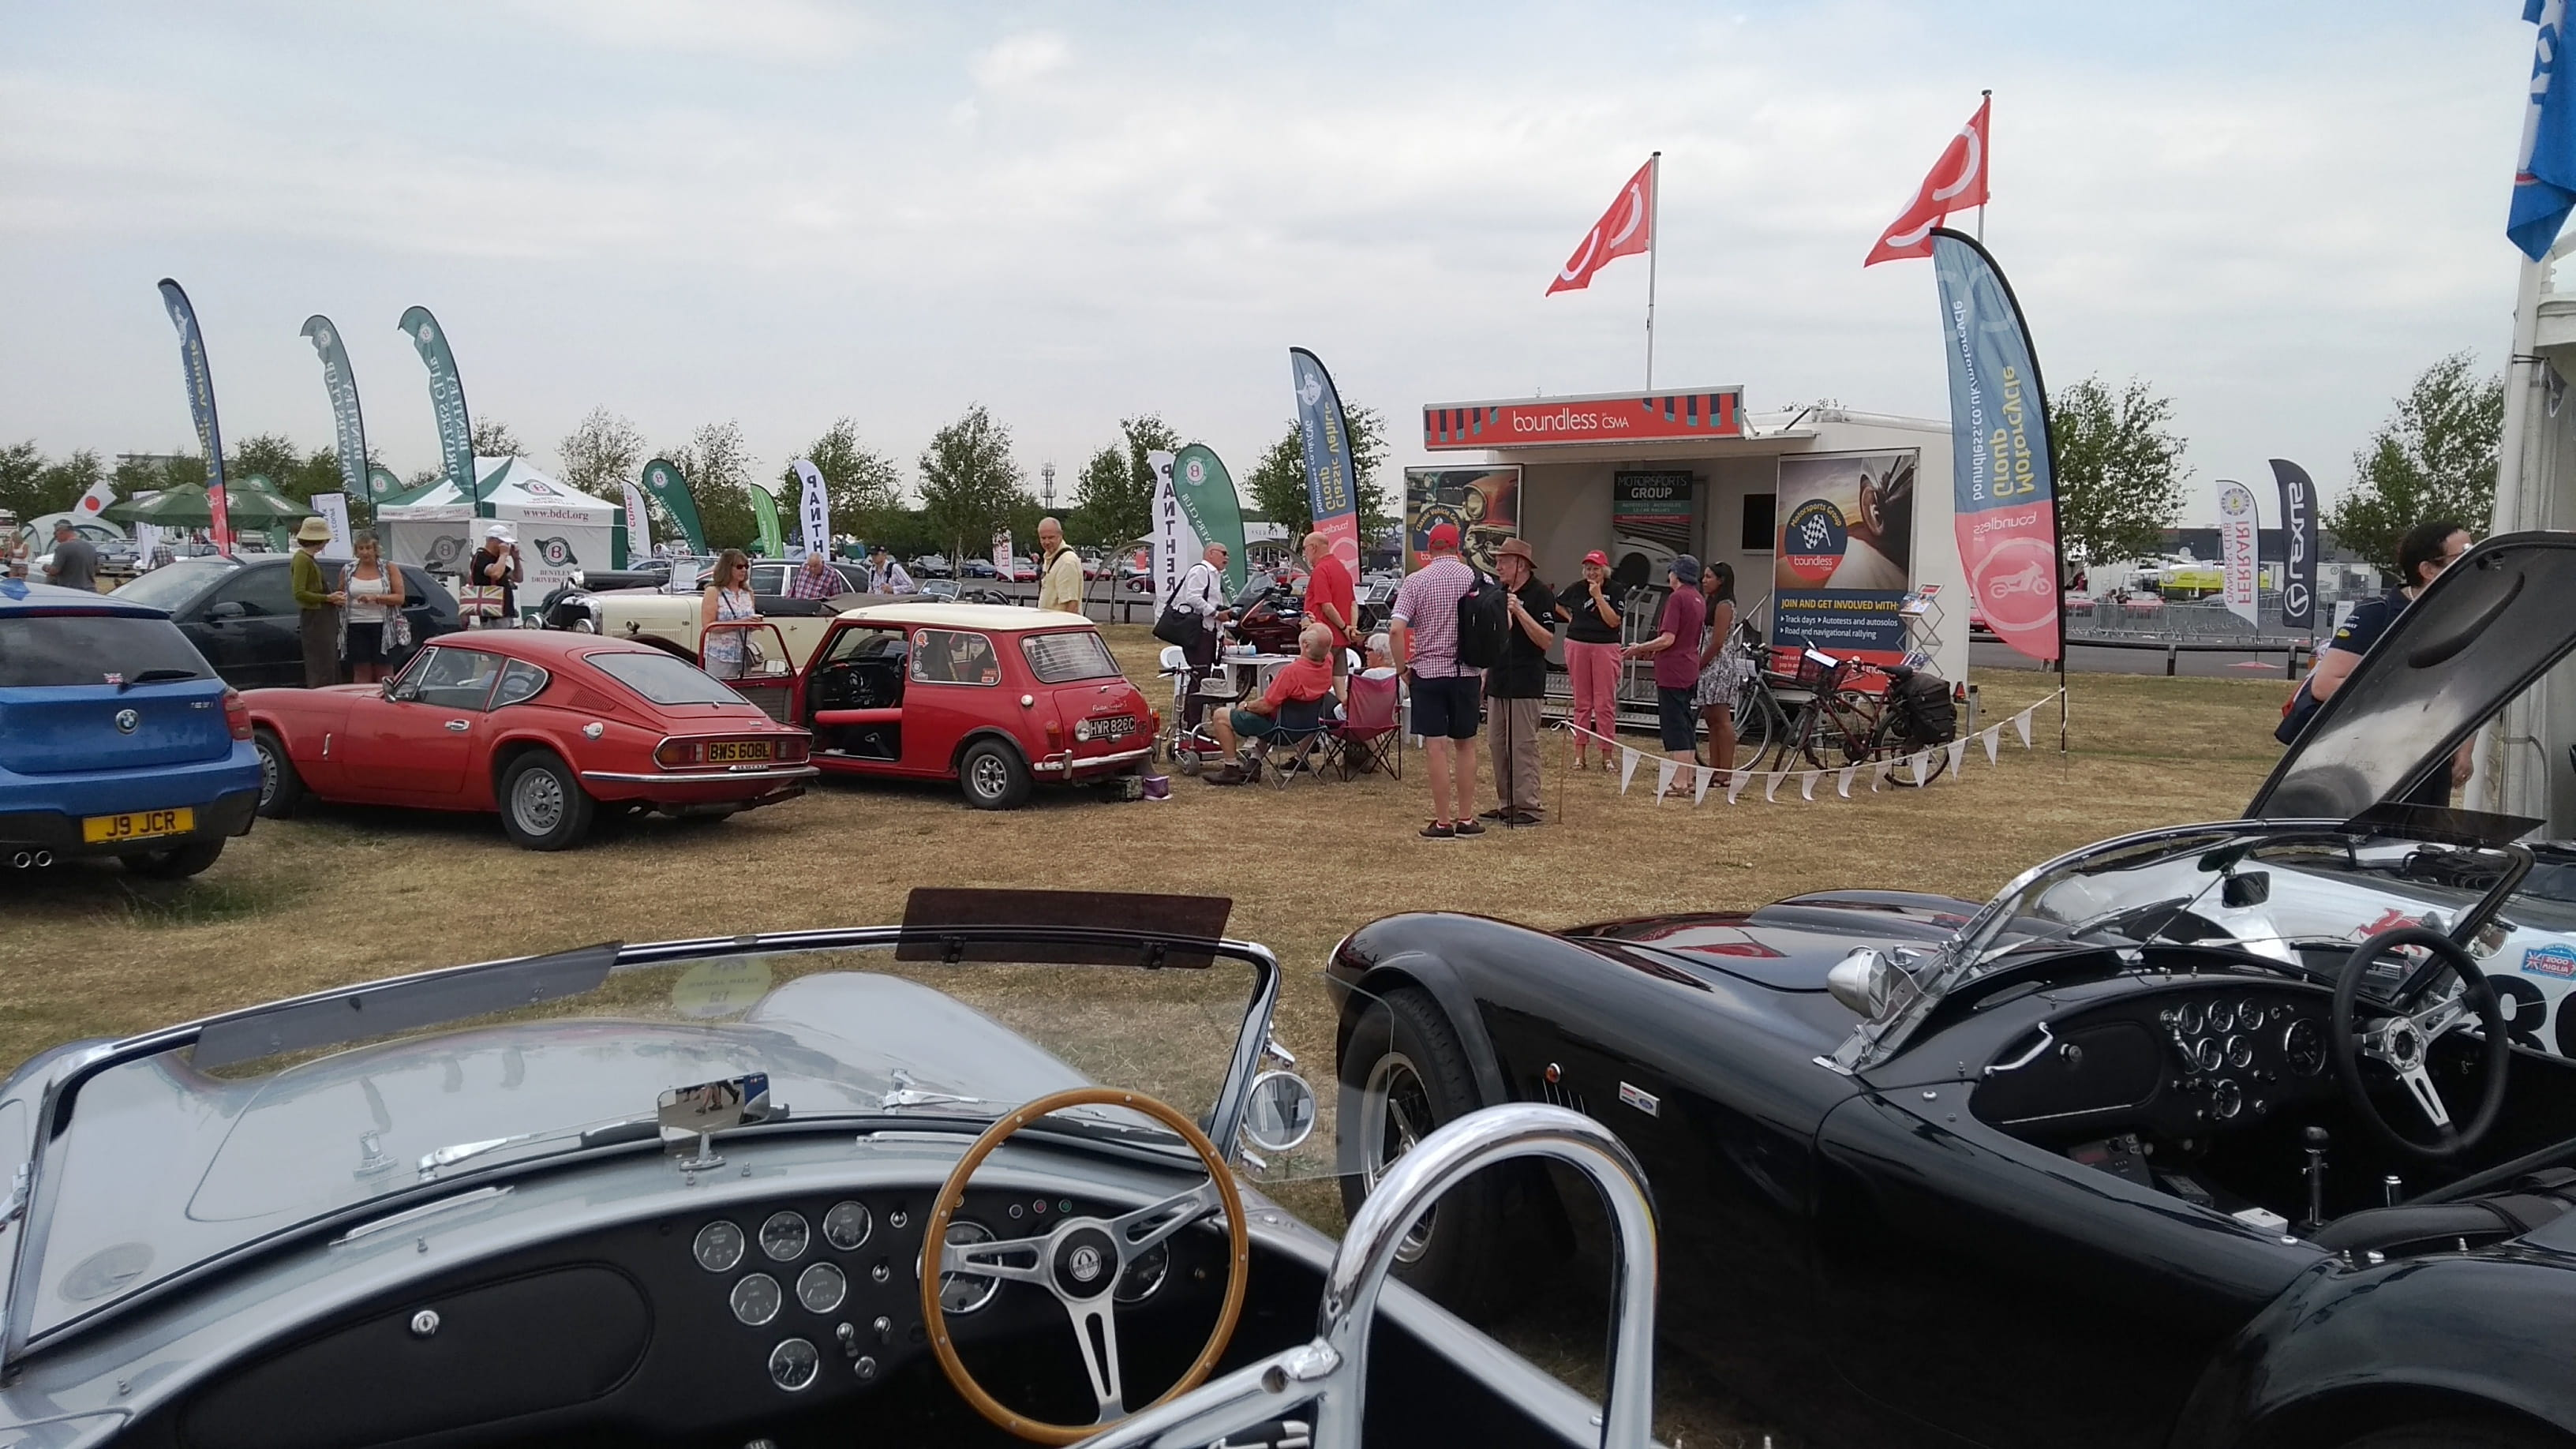 Classic vehicle group display cars with Boundless flags in the background